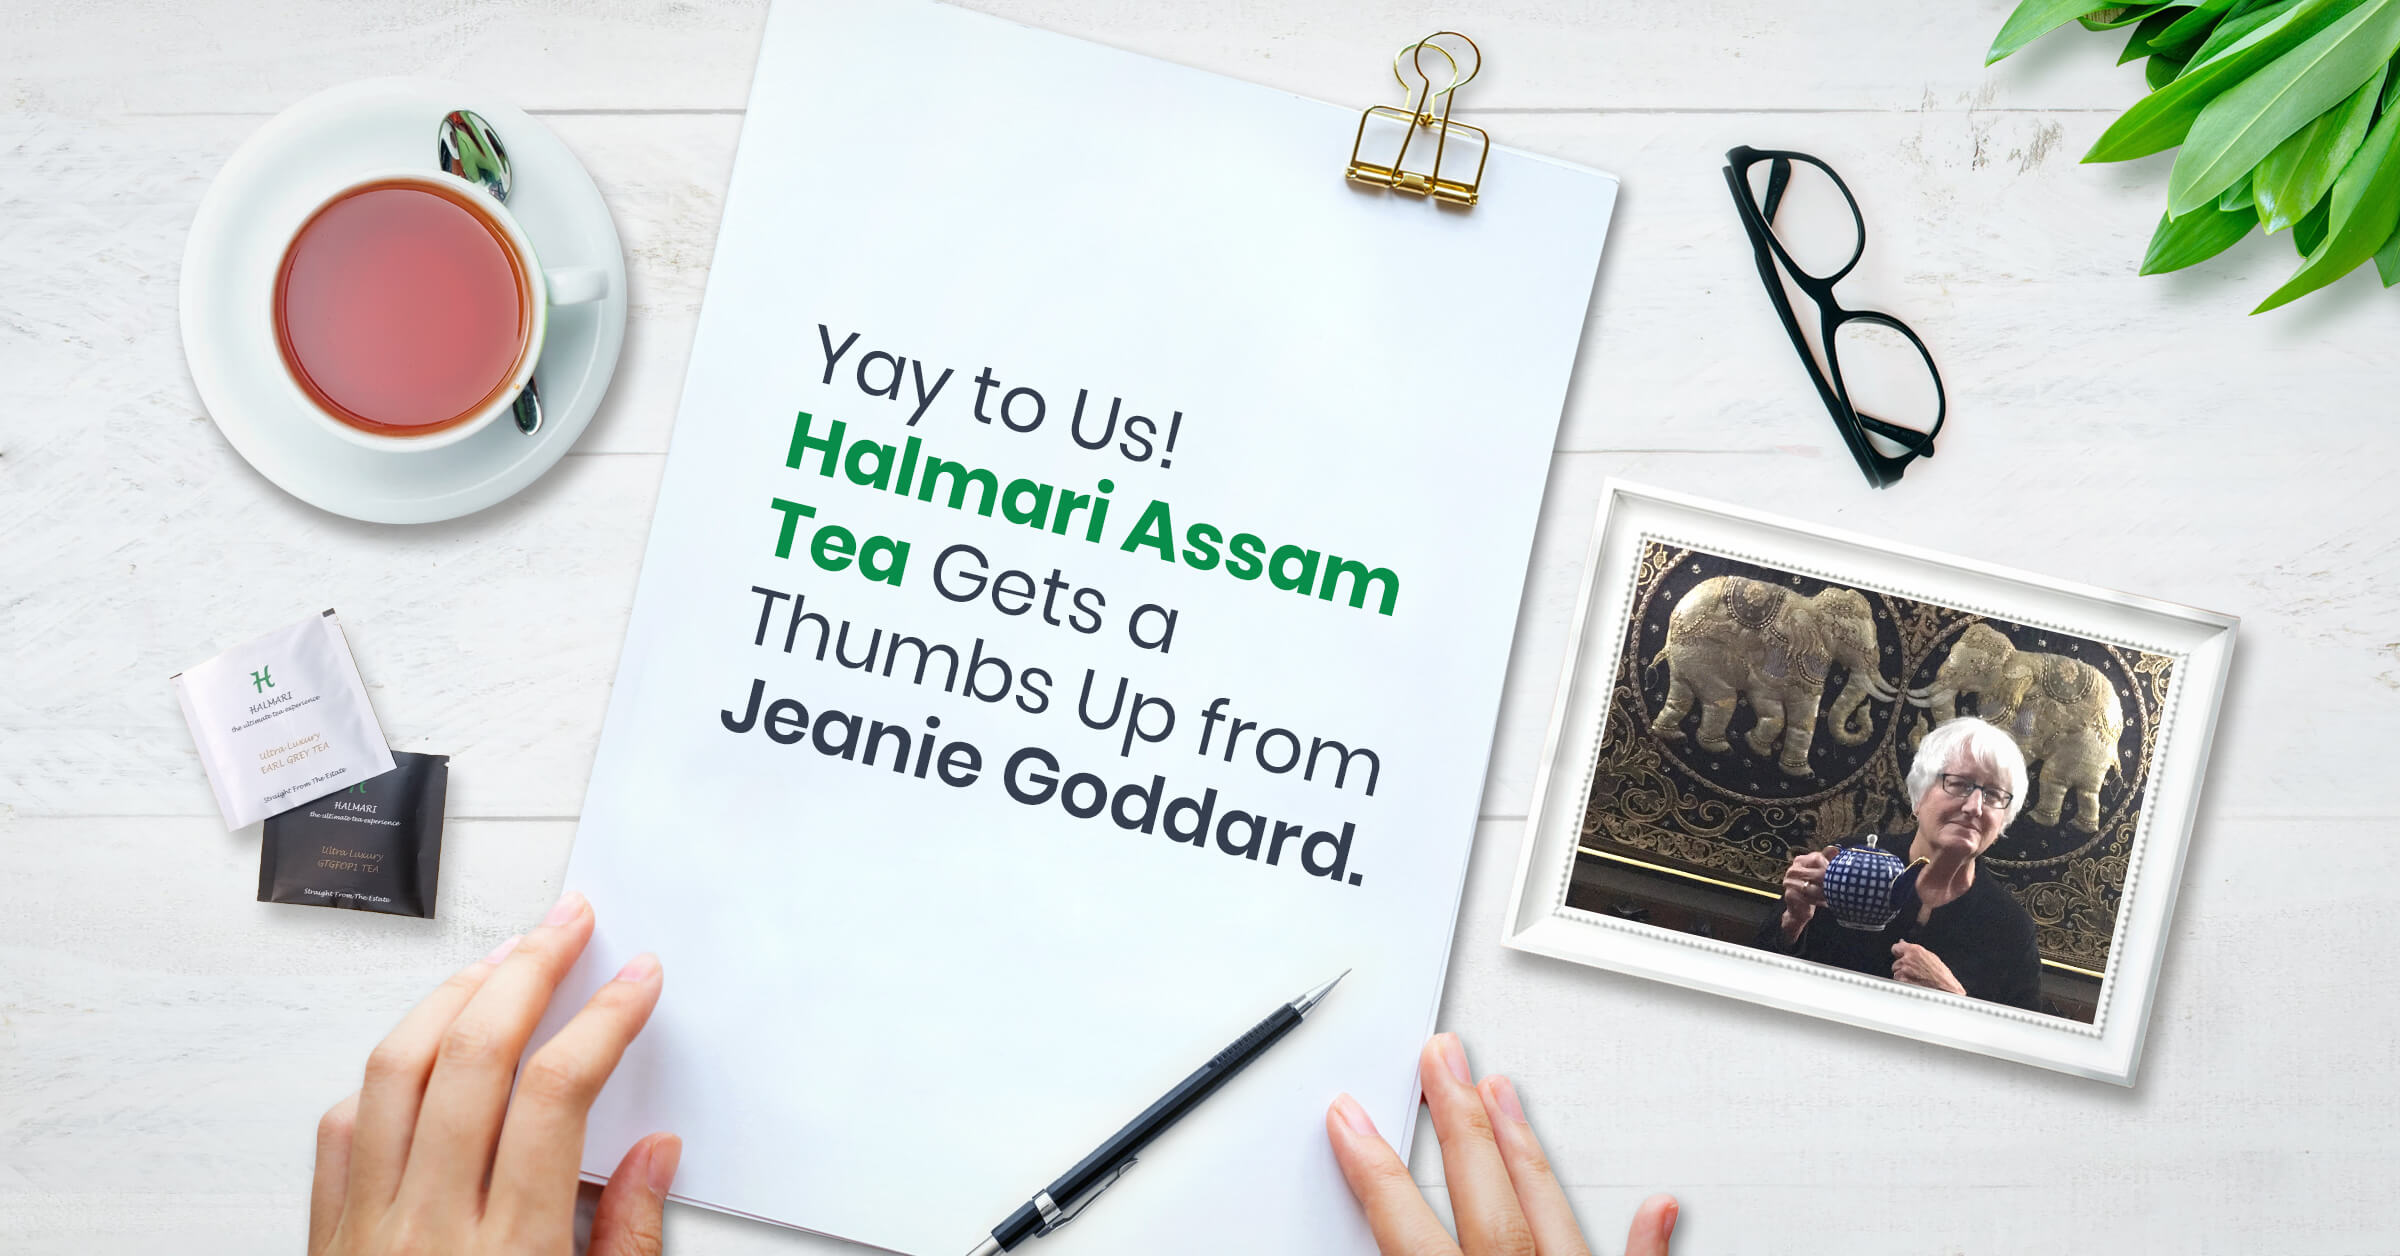 Halmari Assam Tea Gets a Thumbs Up from Jeanie Goddard